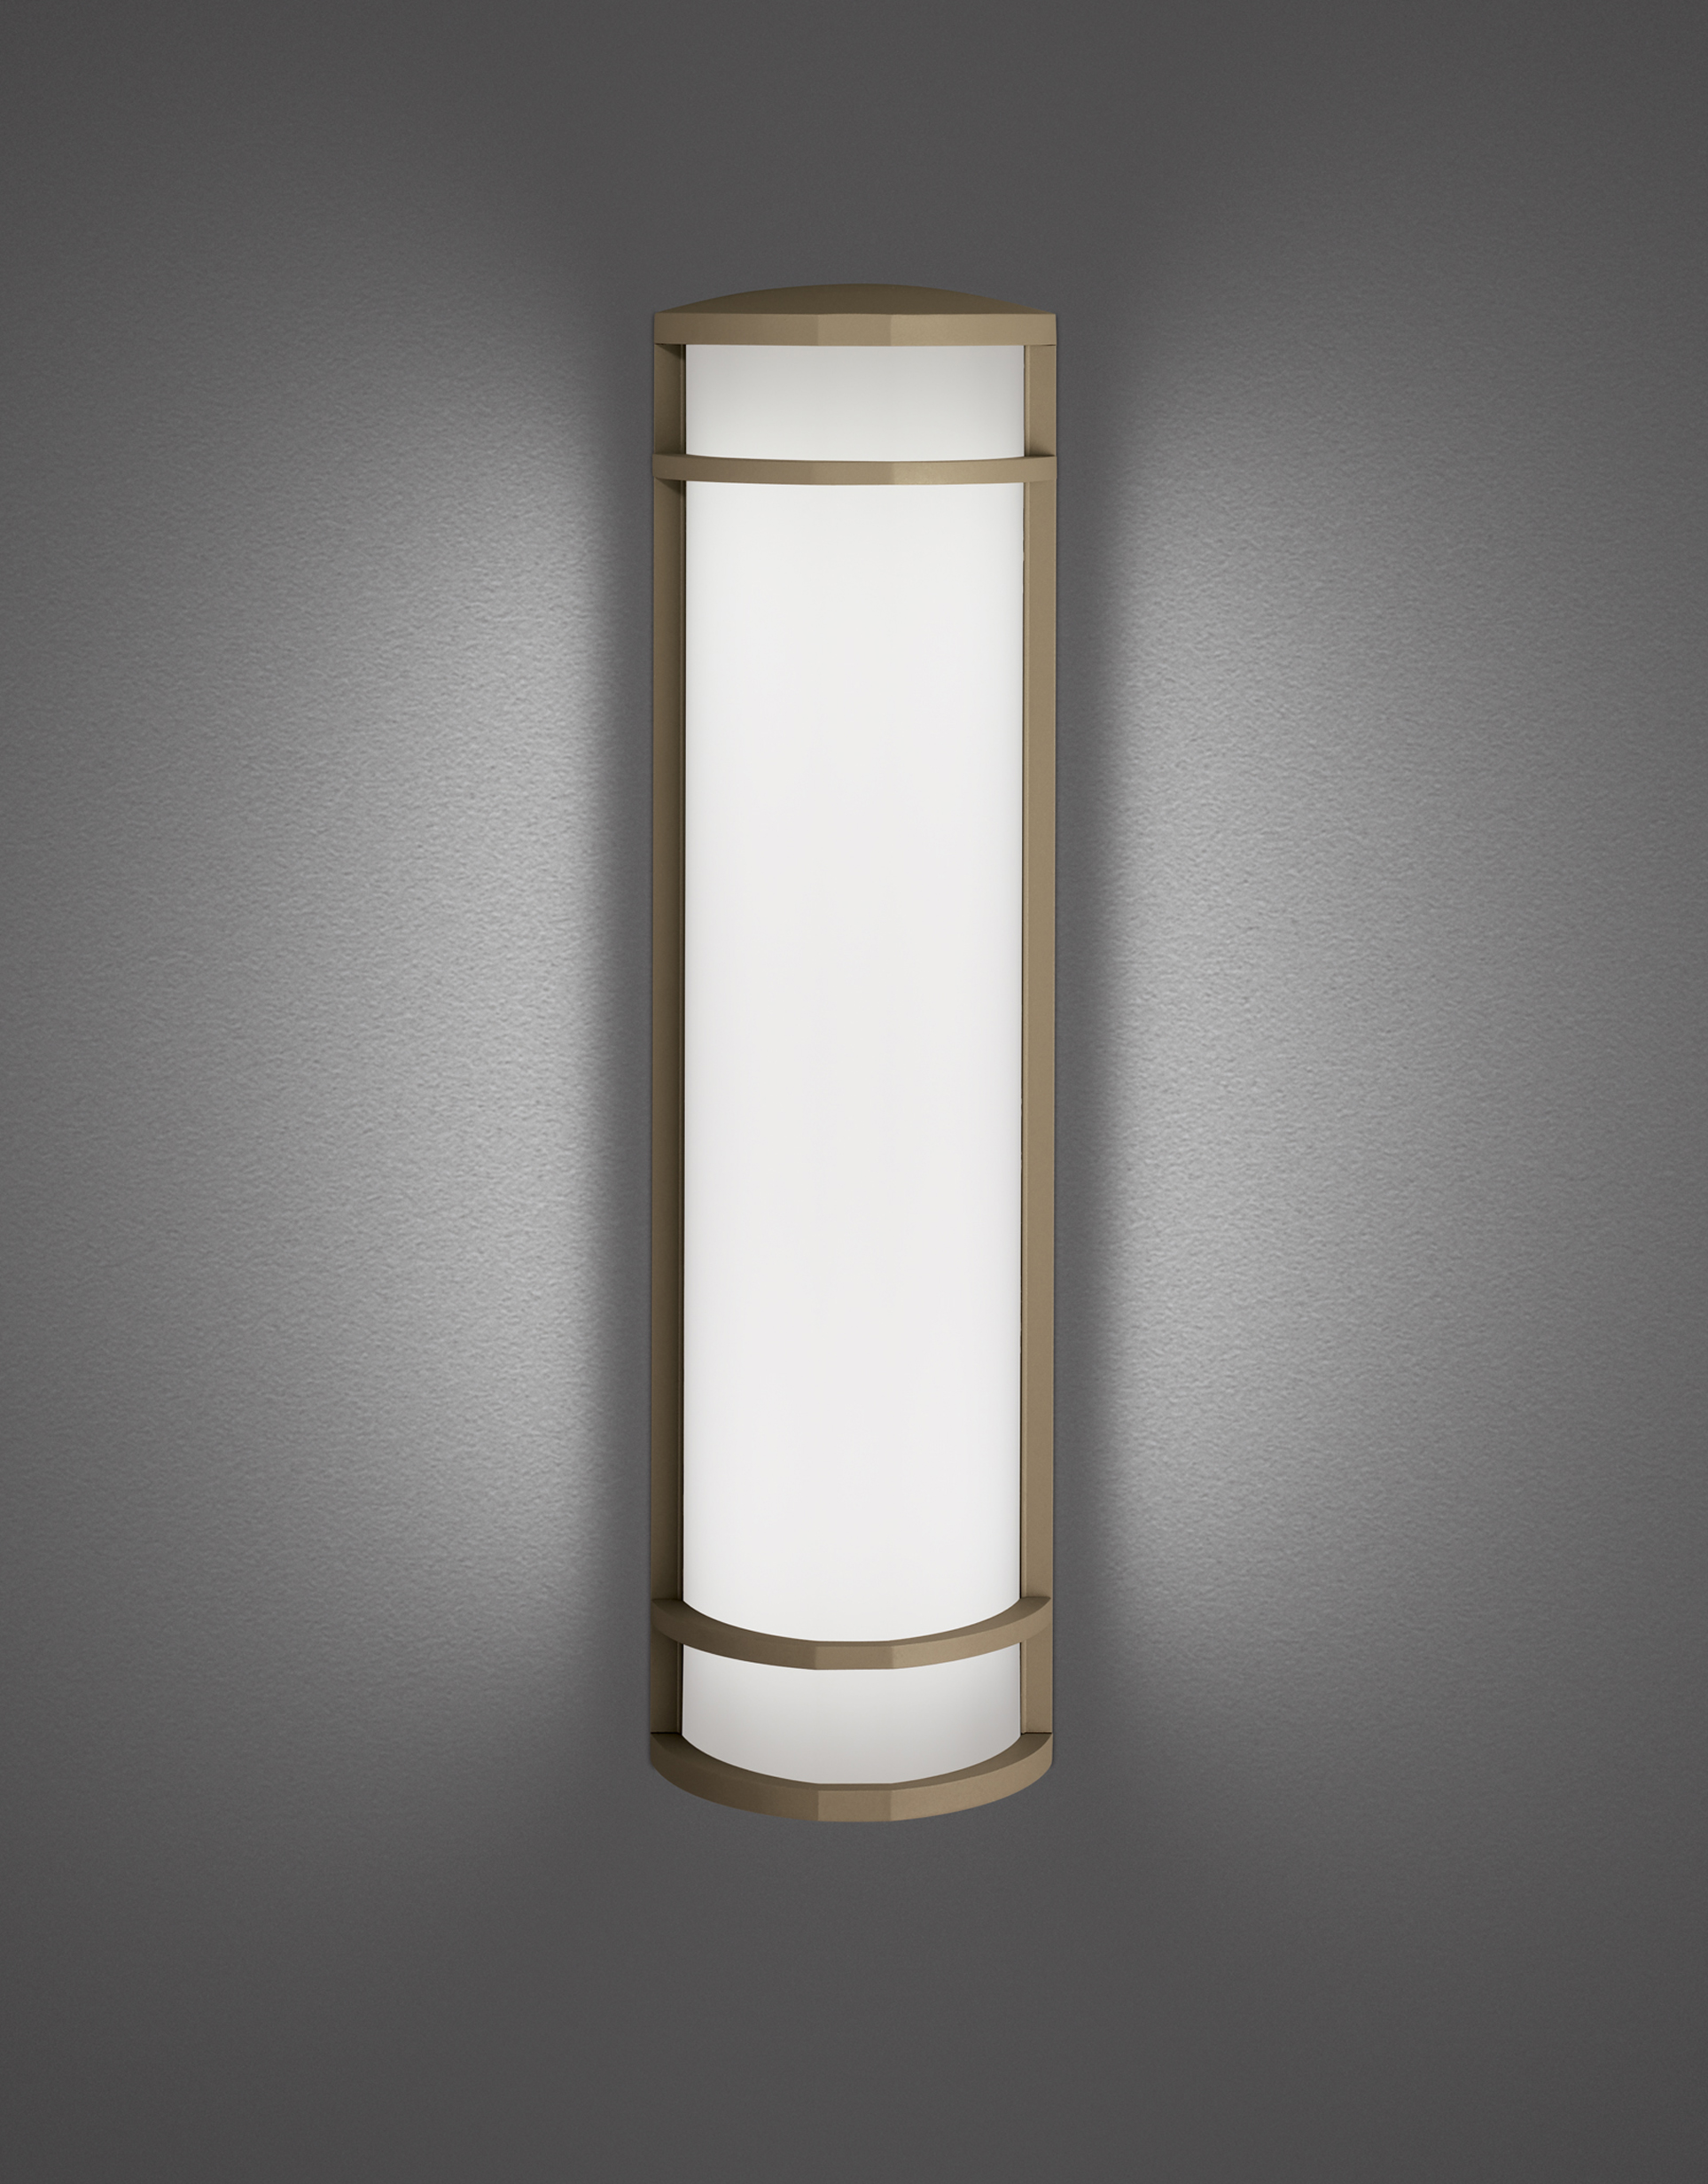 & Allure™ Sconce - OCL Architectural Lighting